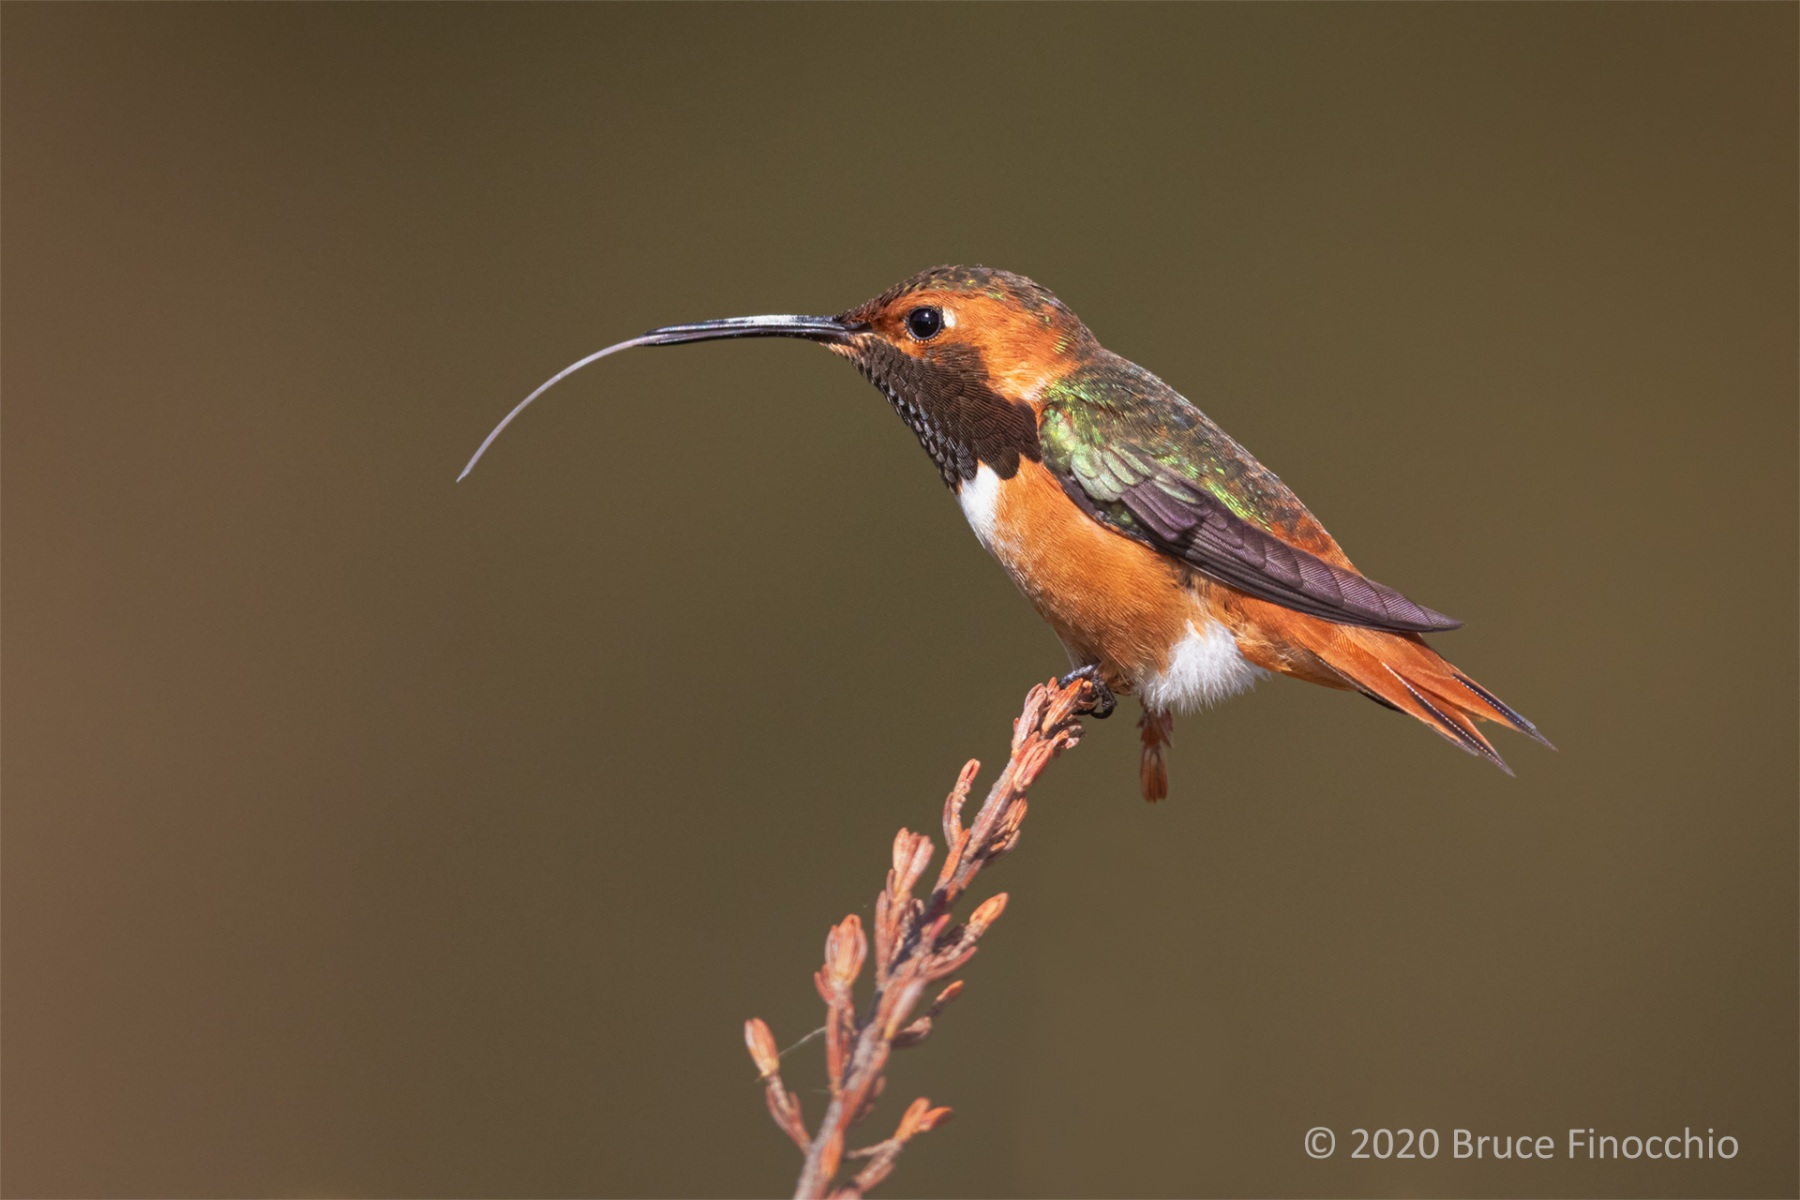 Long White Tongue Of A Male Allen's Hummingbird At Full Extension